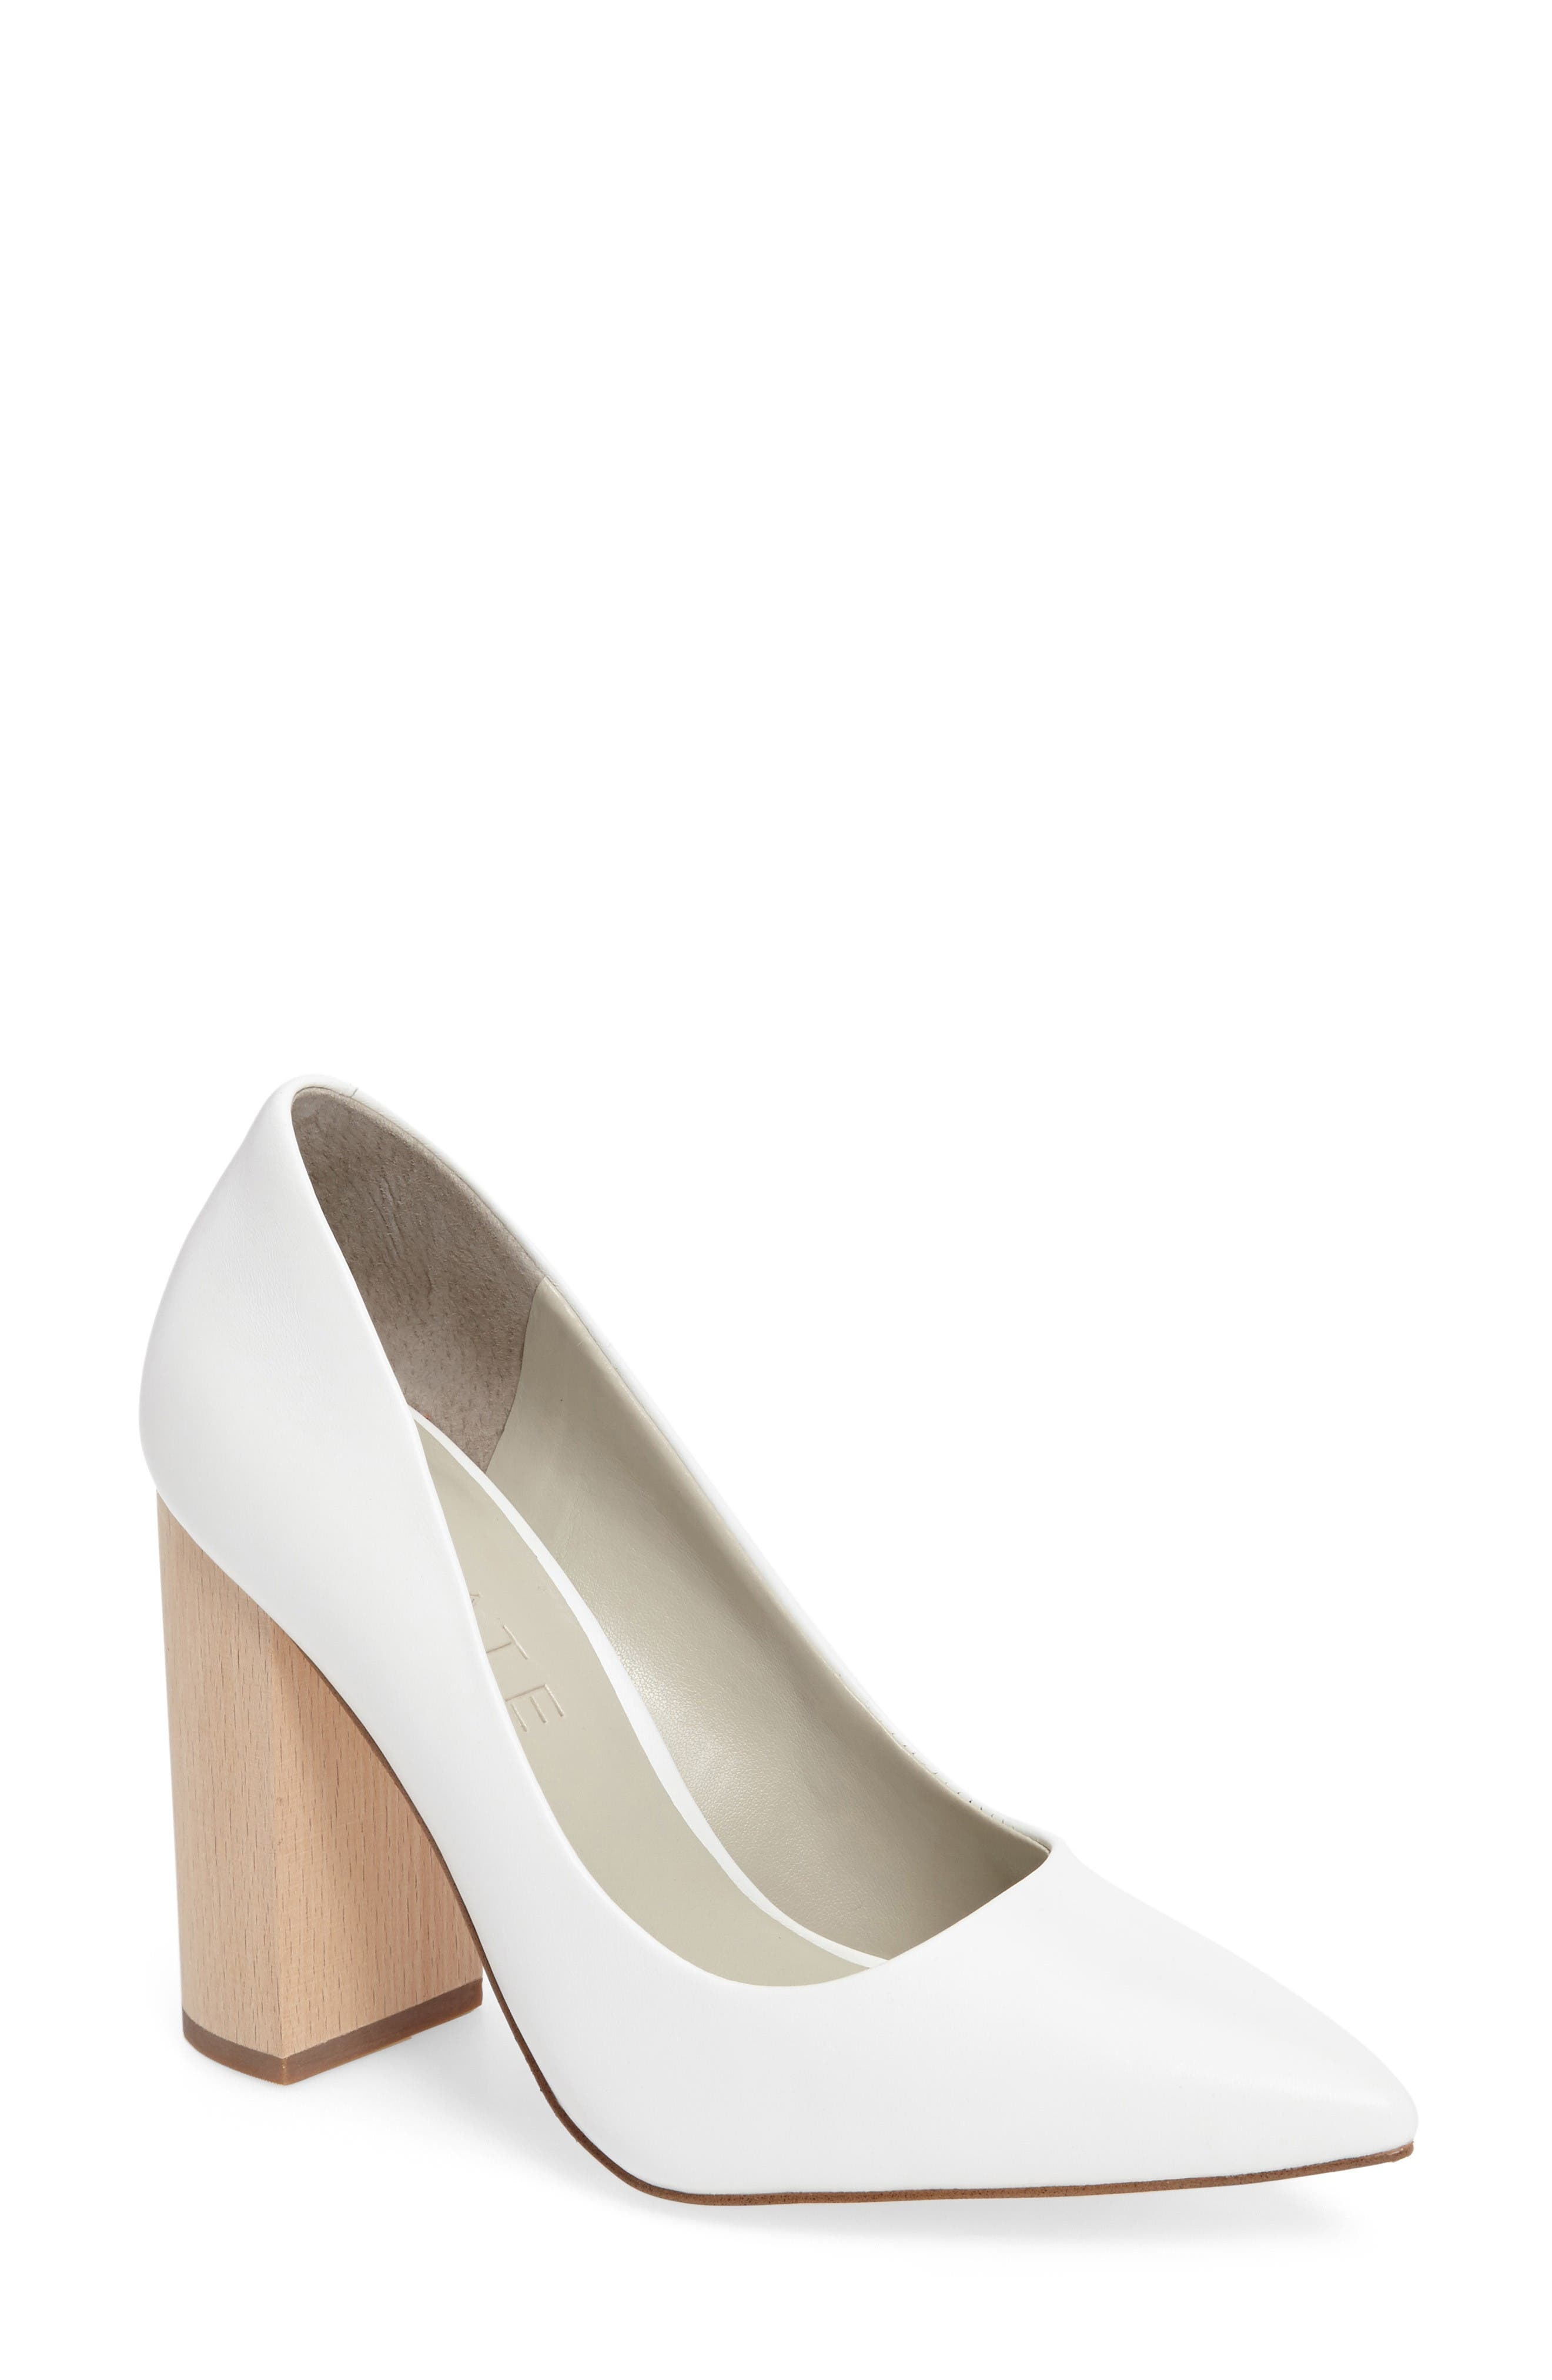 Valencia Block Heel Pump,                         Main,                         color, White Leather